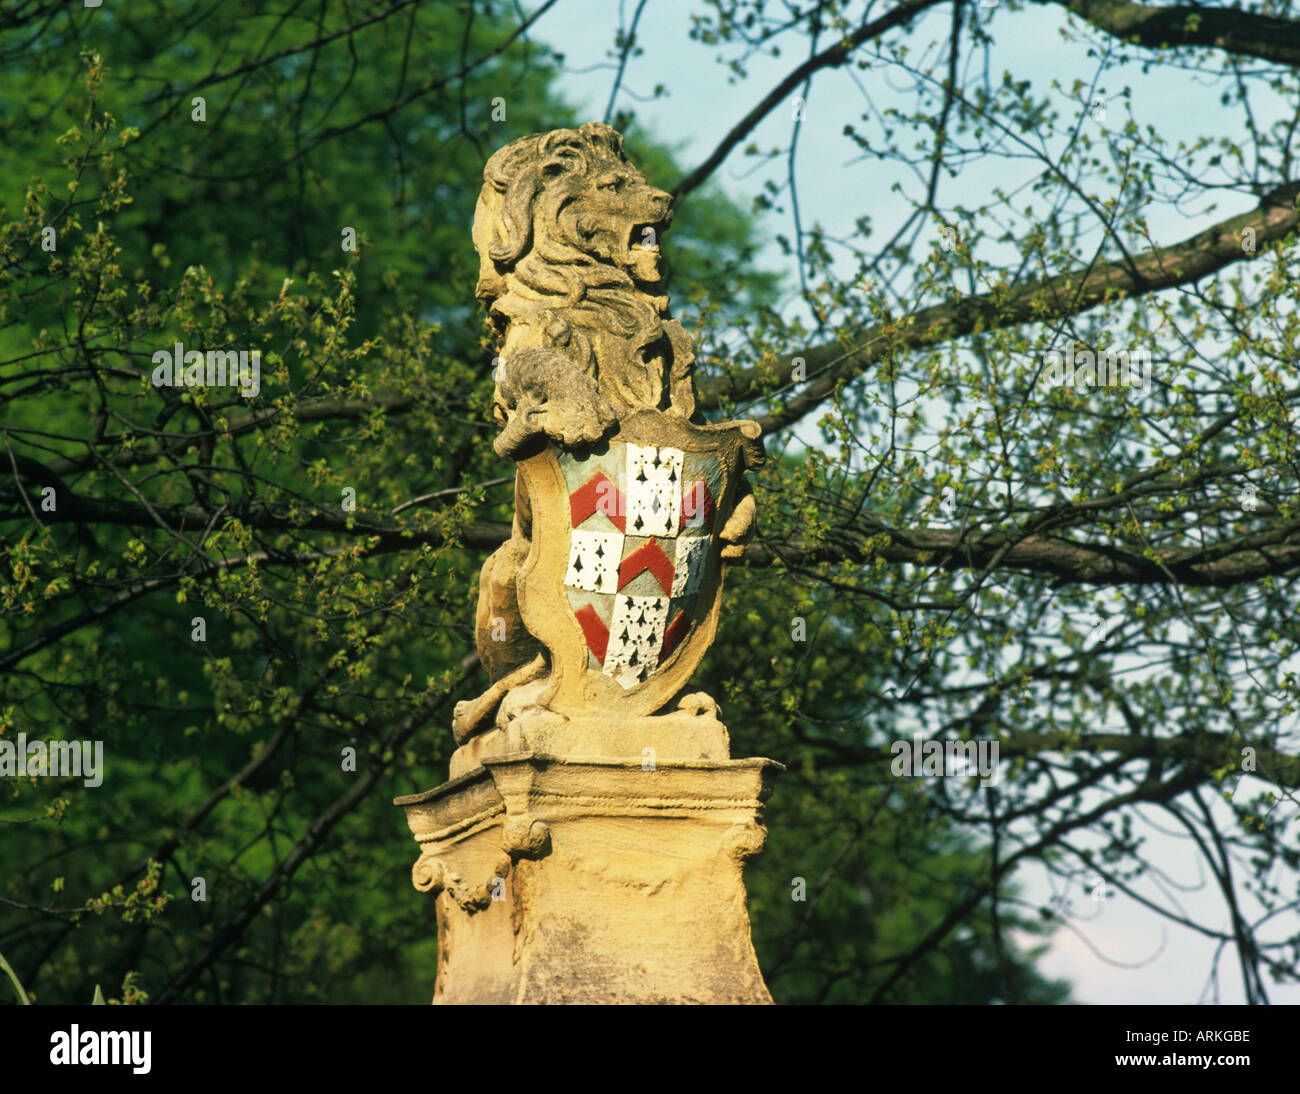 Statue of Lion holding a shield with the heraldry of The City of Lichfield Staffordshire Coat of Arms - Stock Image